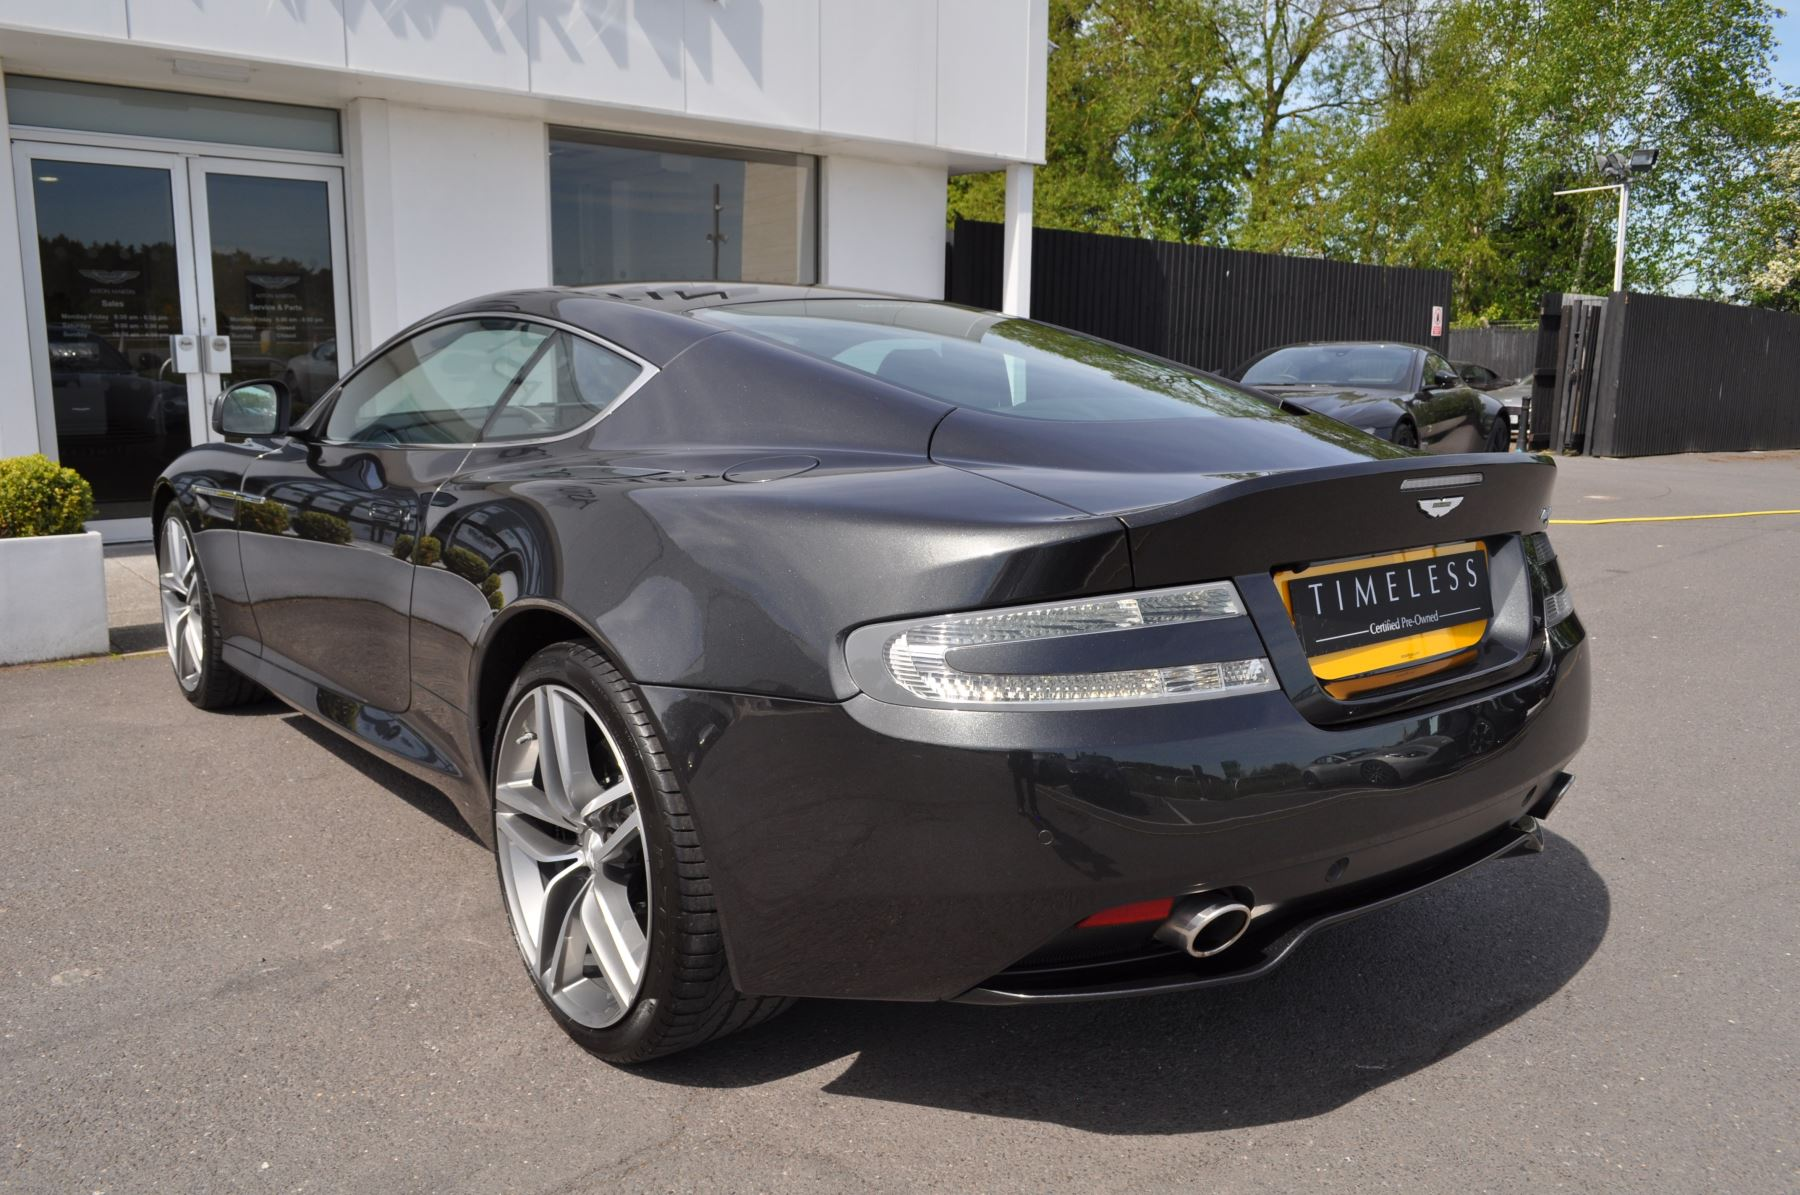 Aston Martin DB9 V12 2dr Touchtronic image 21